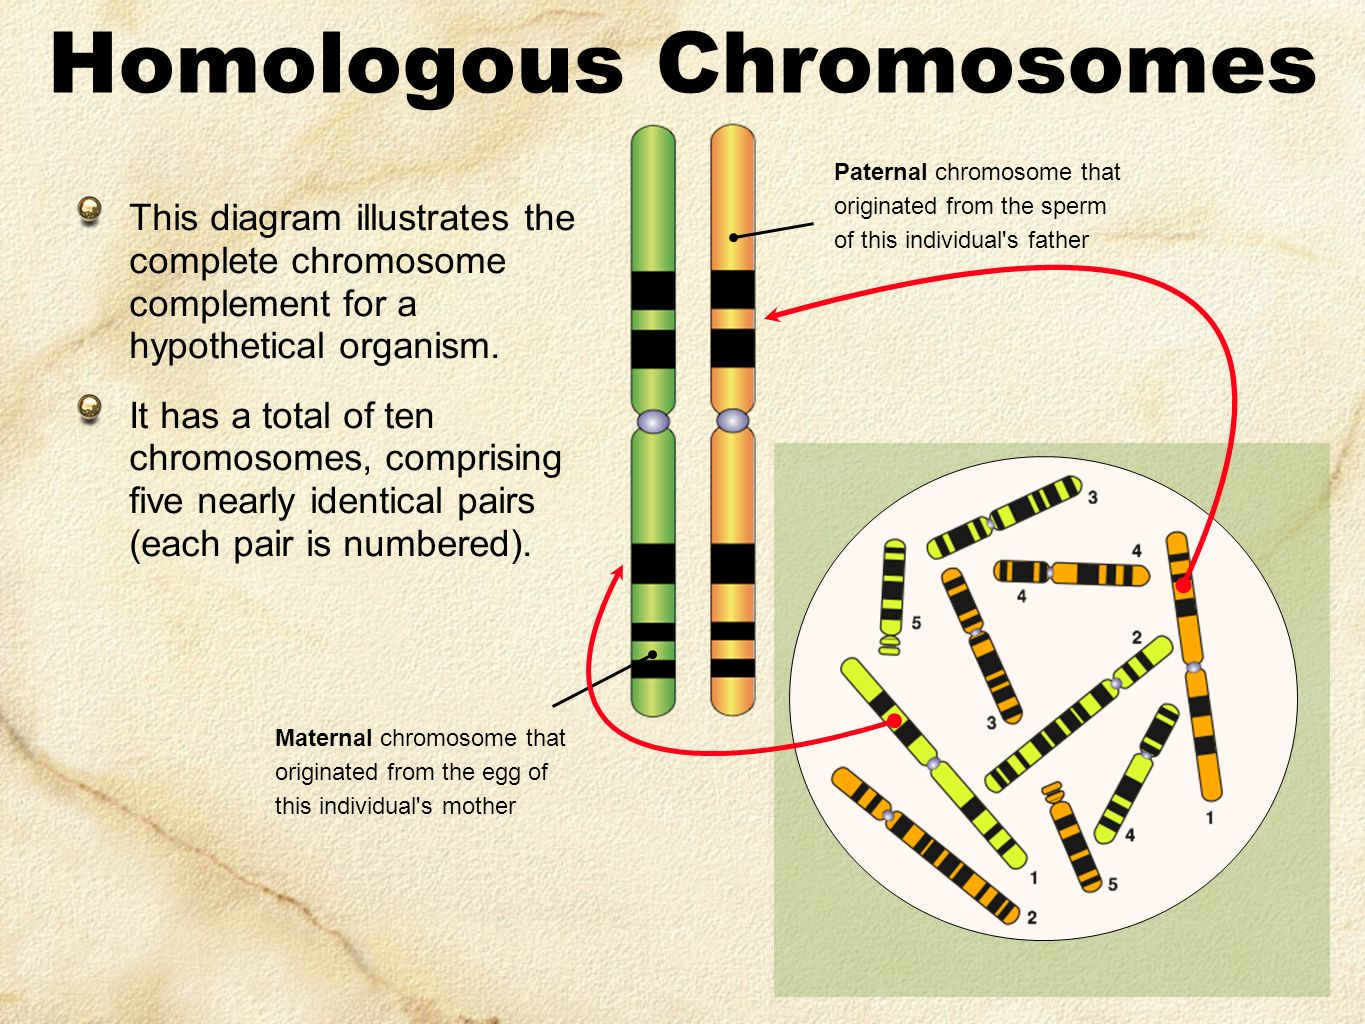 Homologous Chromosomes This diagram illustrates the complete chromosome complement for a hypothetical organism.